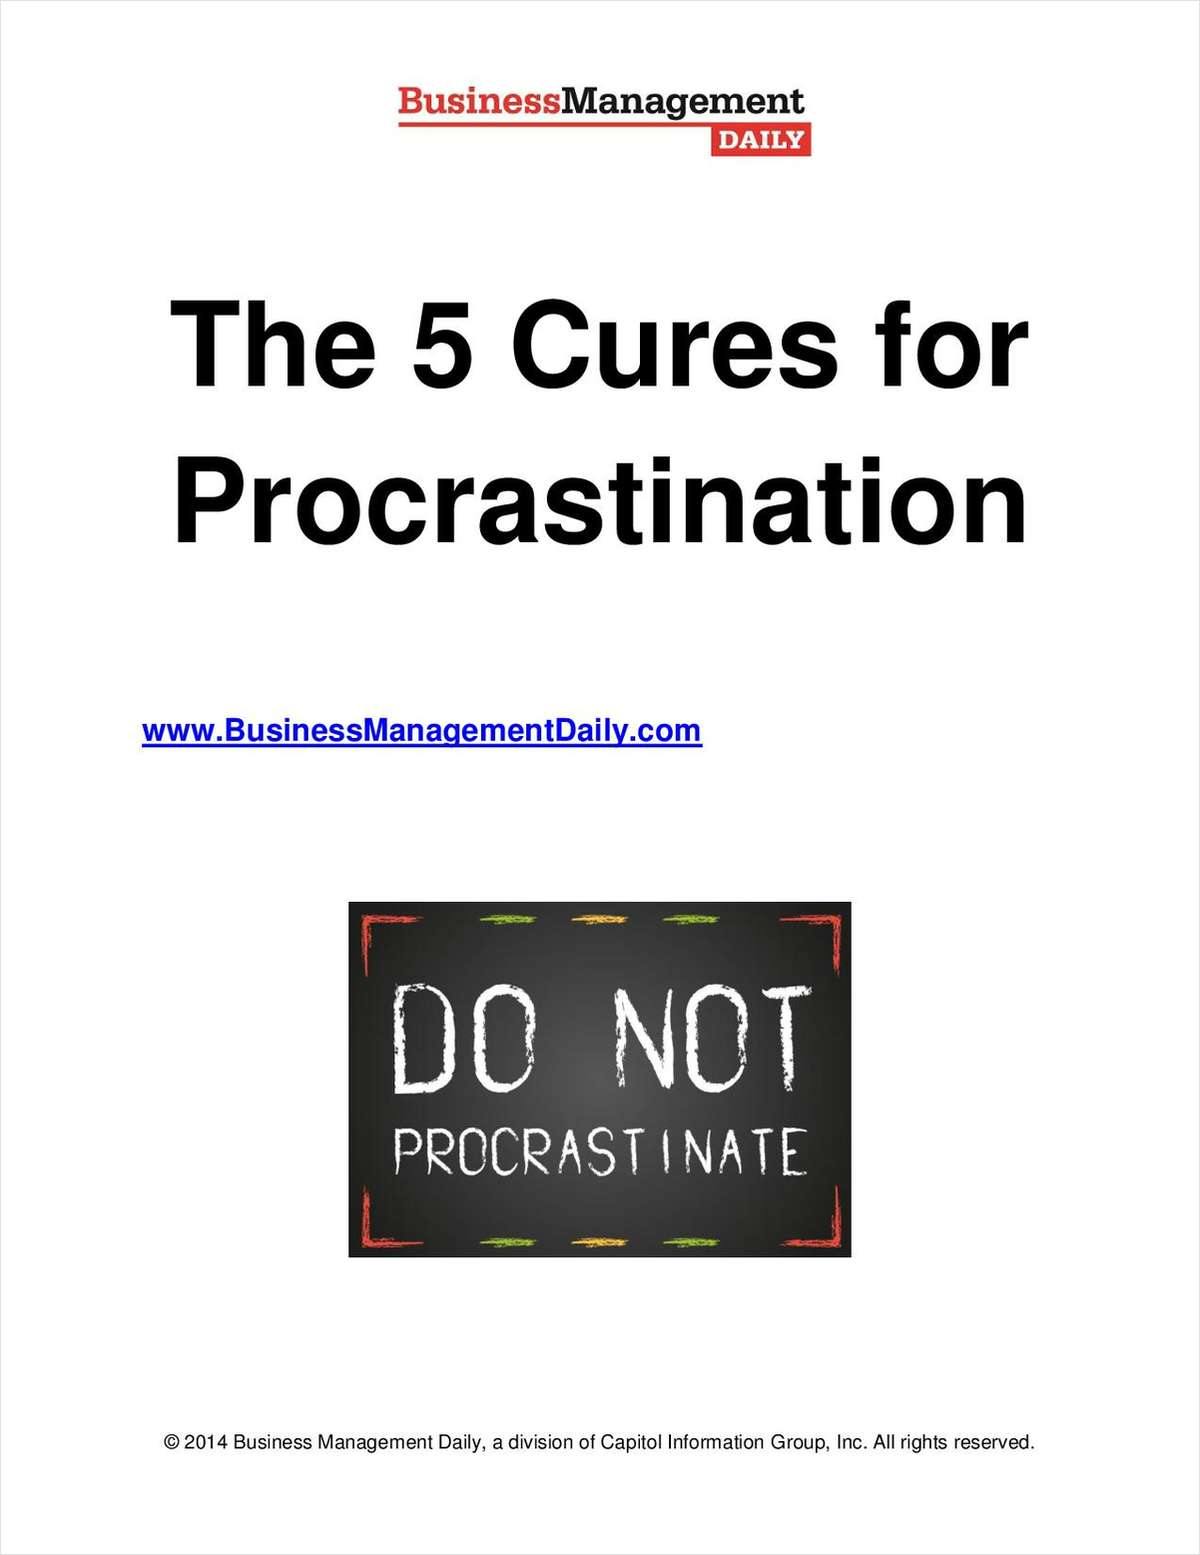 The 5 Cures for Procrastination